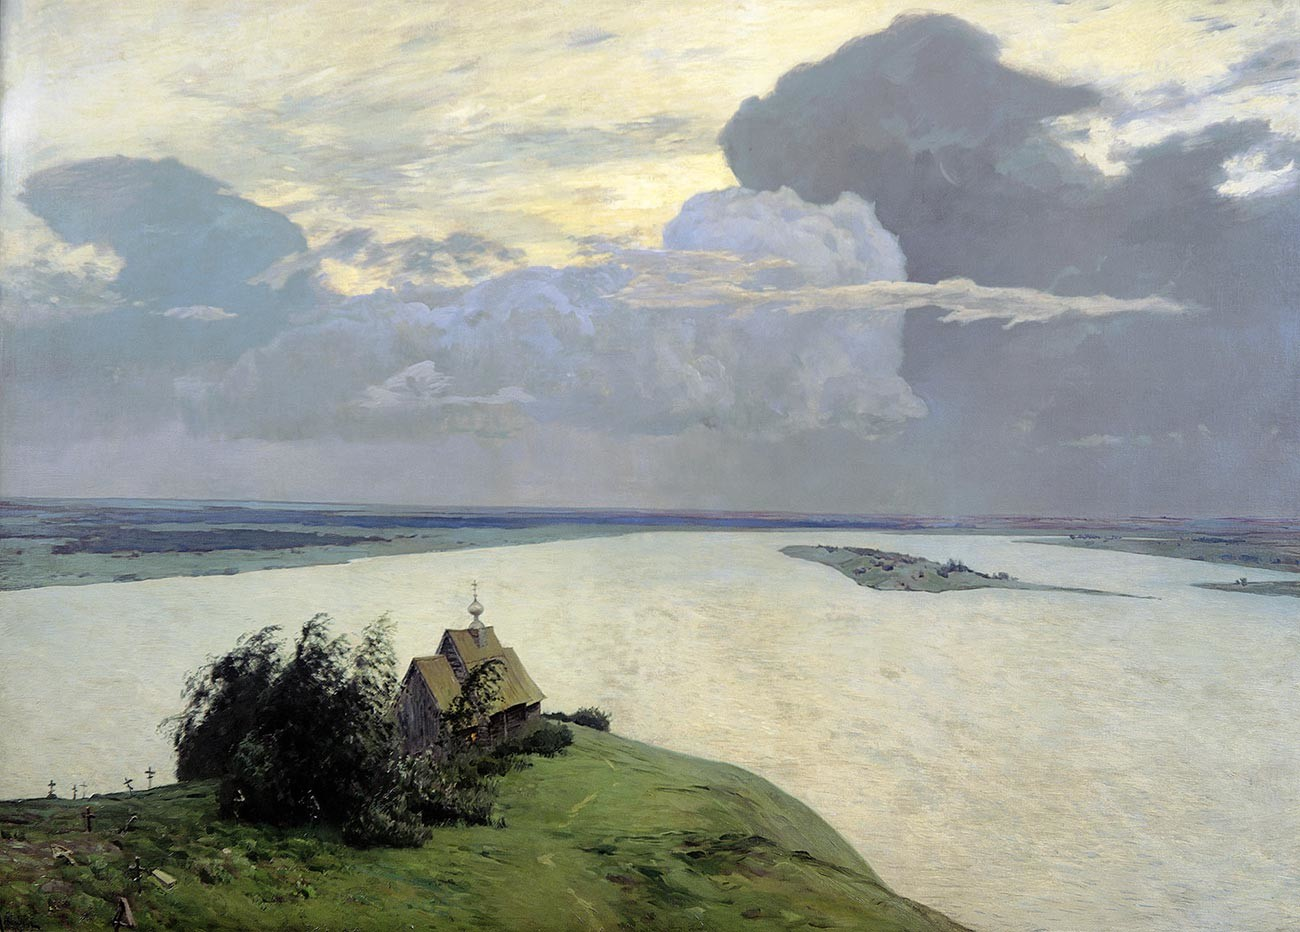 Over Eternal Peace, one of the most 'Russian' landscape